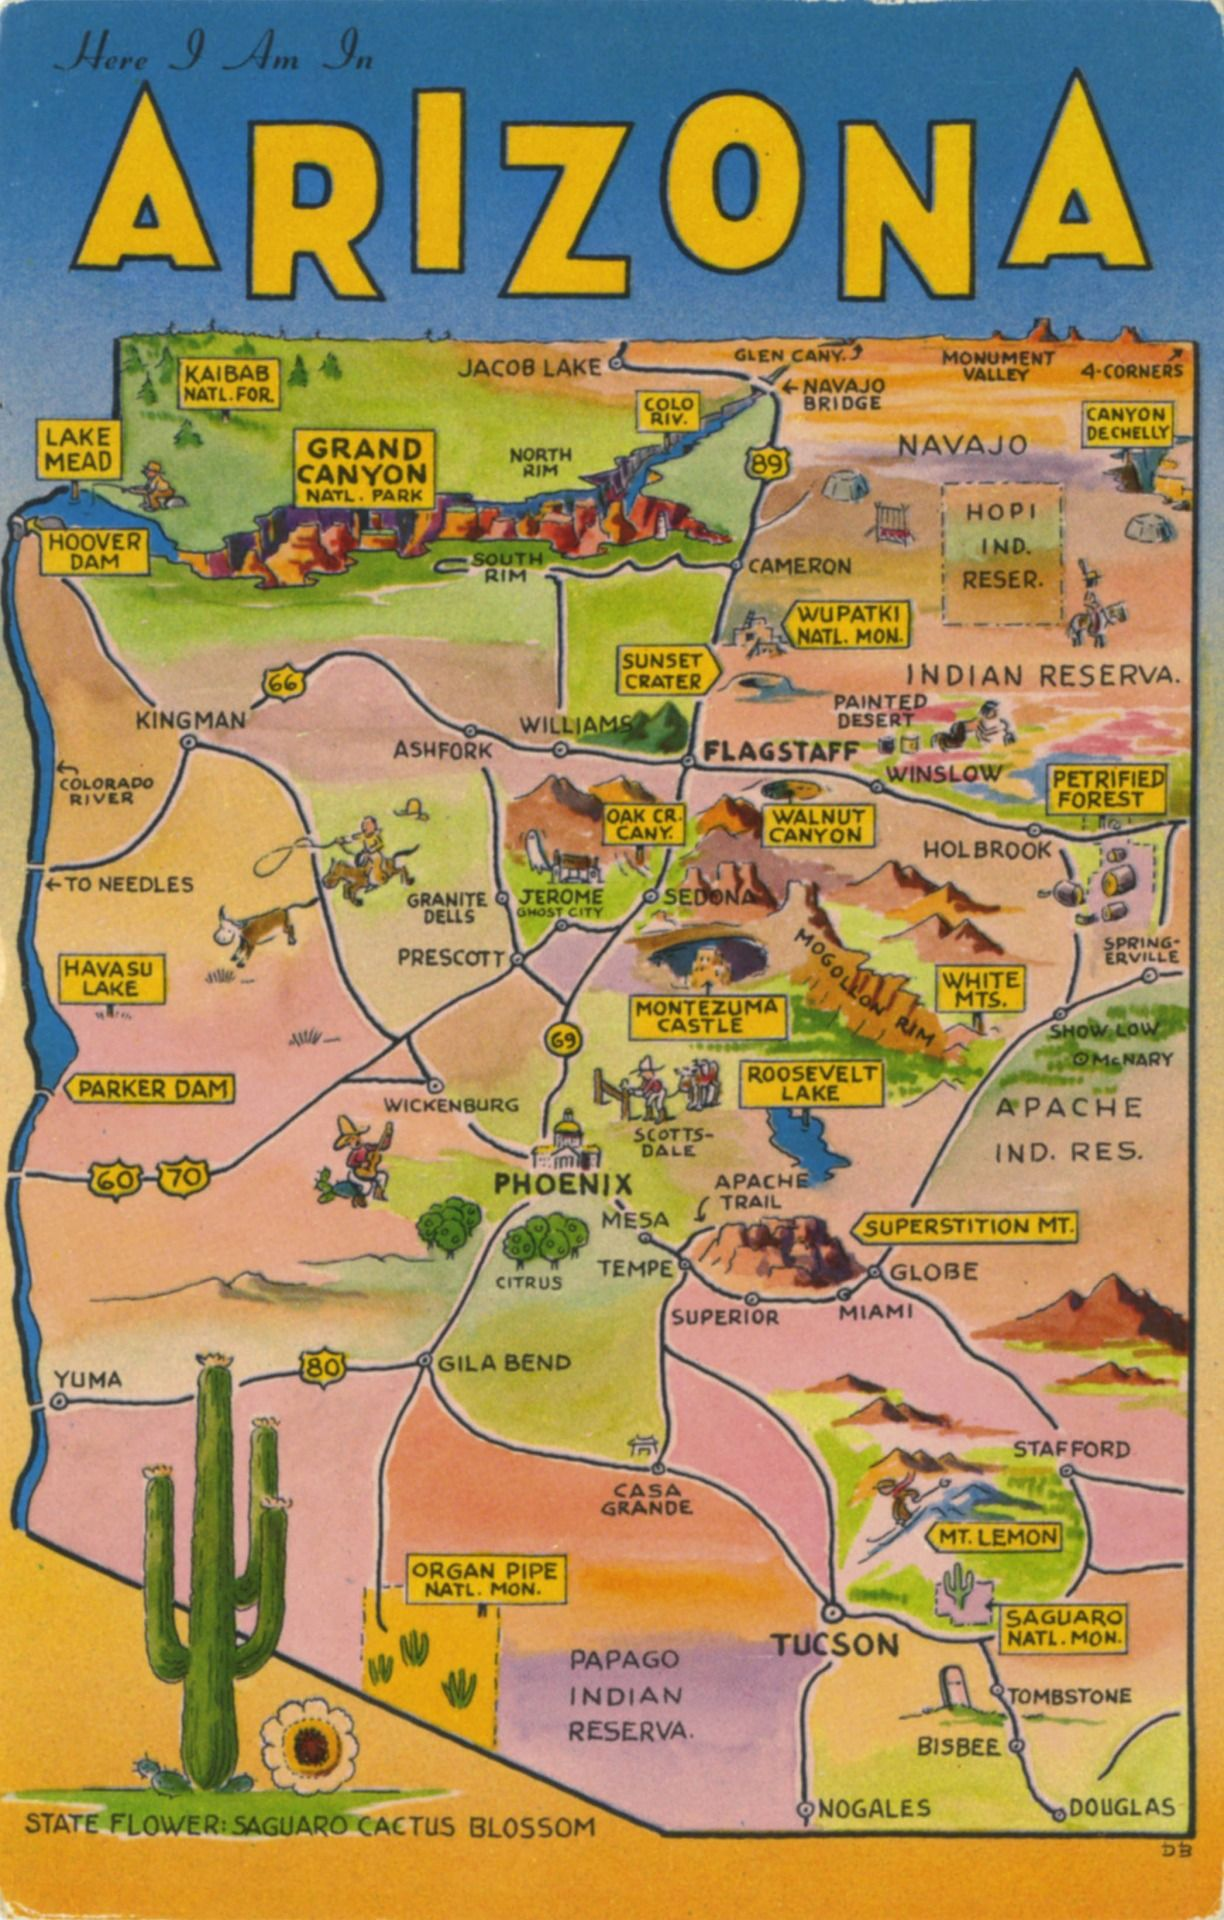 Travel Map Of Arizona Arizona Map | Arizona in 2019 | Arizona road trip, Arizona travel